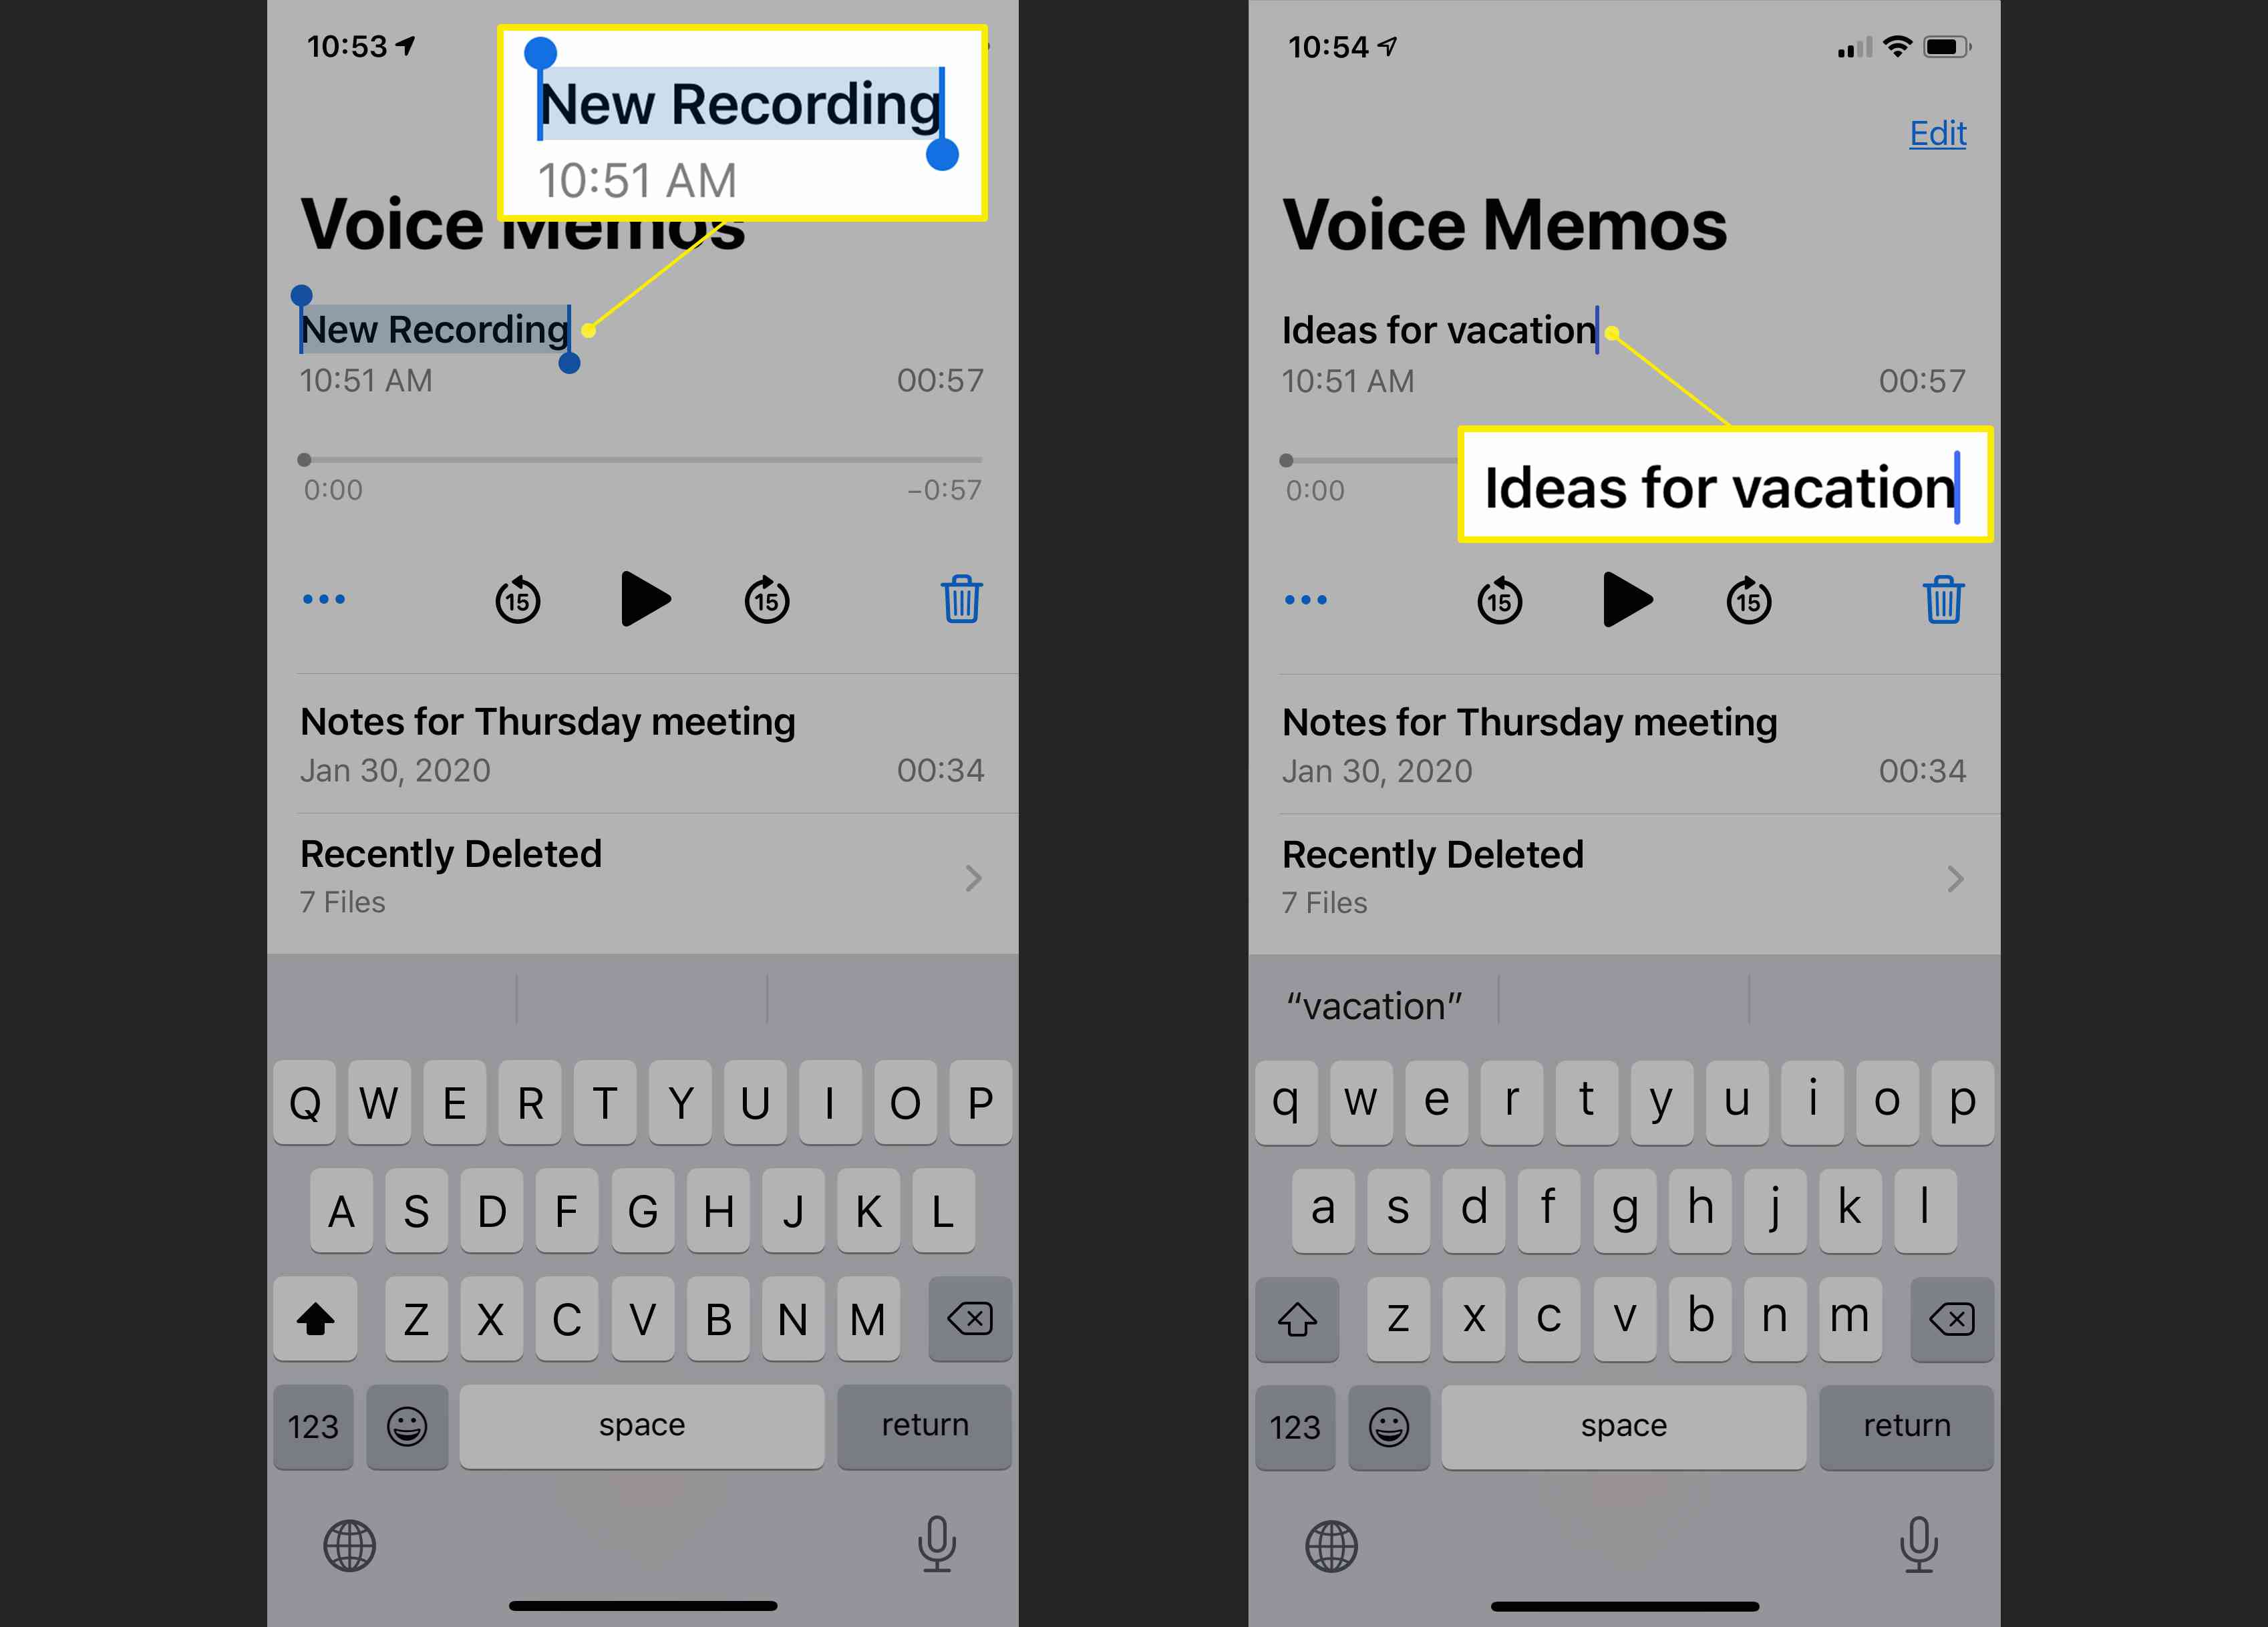 Naming a new recording in the Voice Memos app